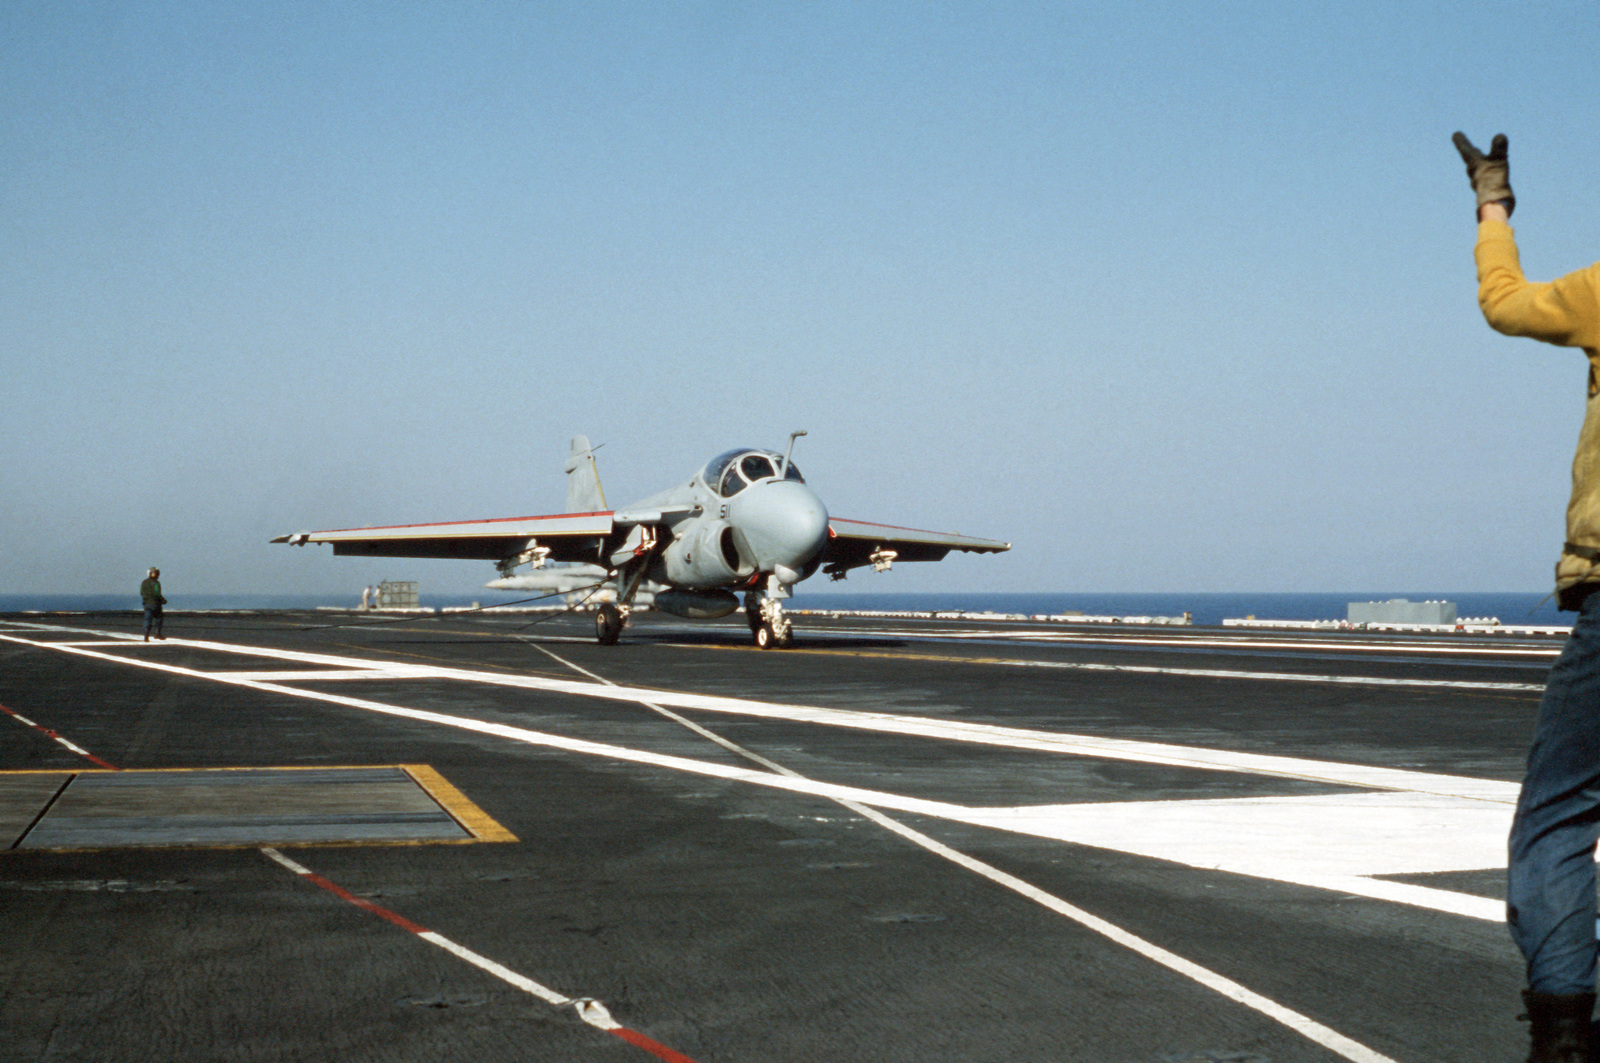 A Strike-Fighter Squadron 111 (VFA-111) A-6E Intruder aircraft lands aboard the nuclear-powered aircraft carrier USS DWIGHT D. EISENHOWER (CVN 69)